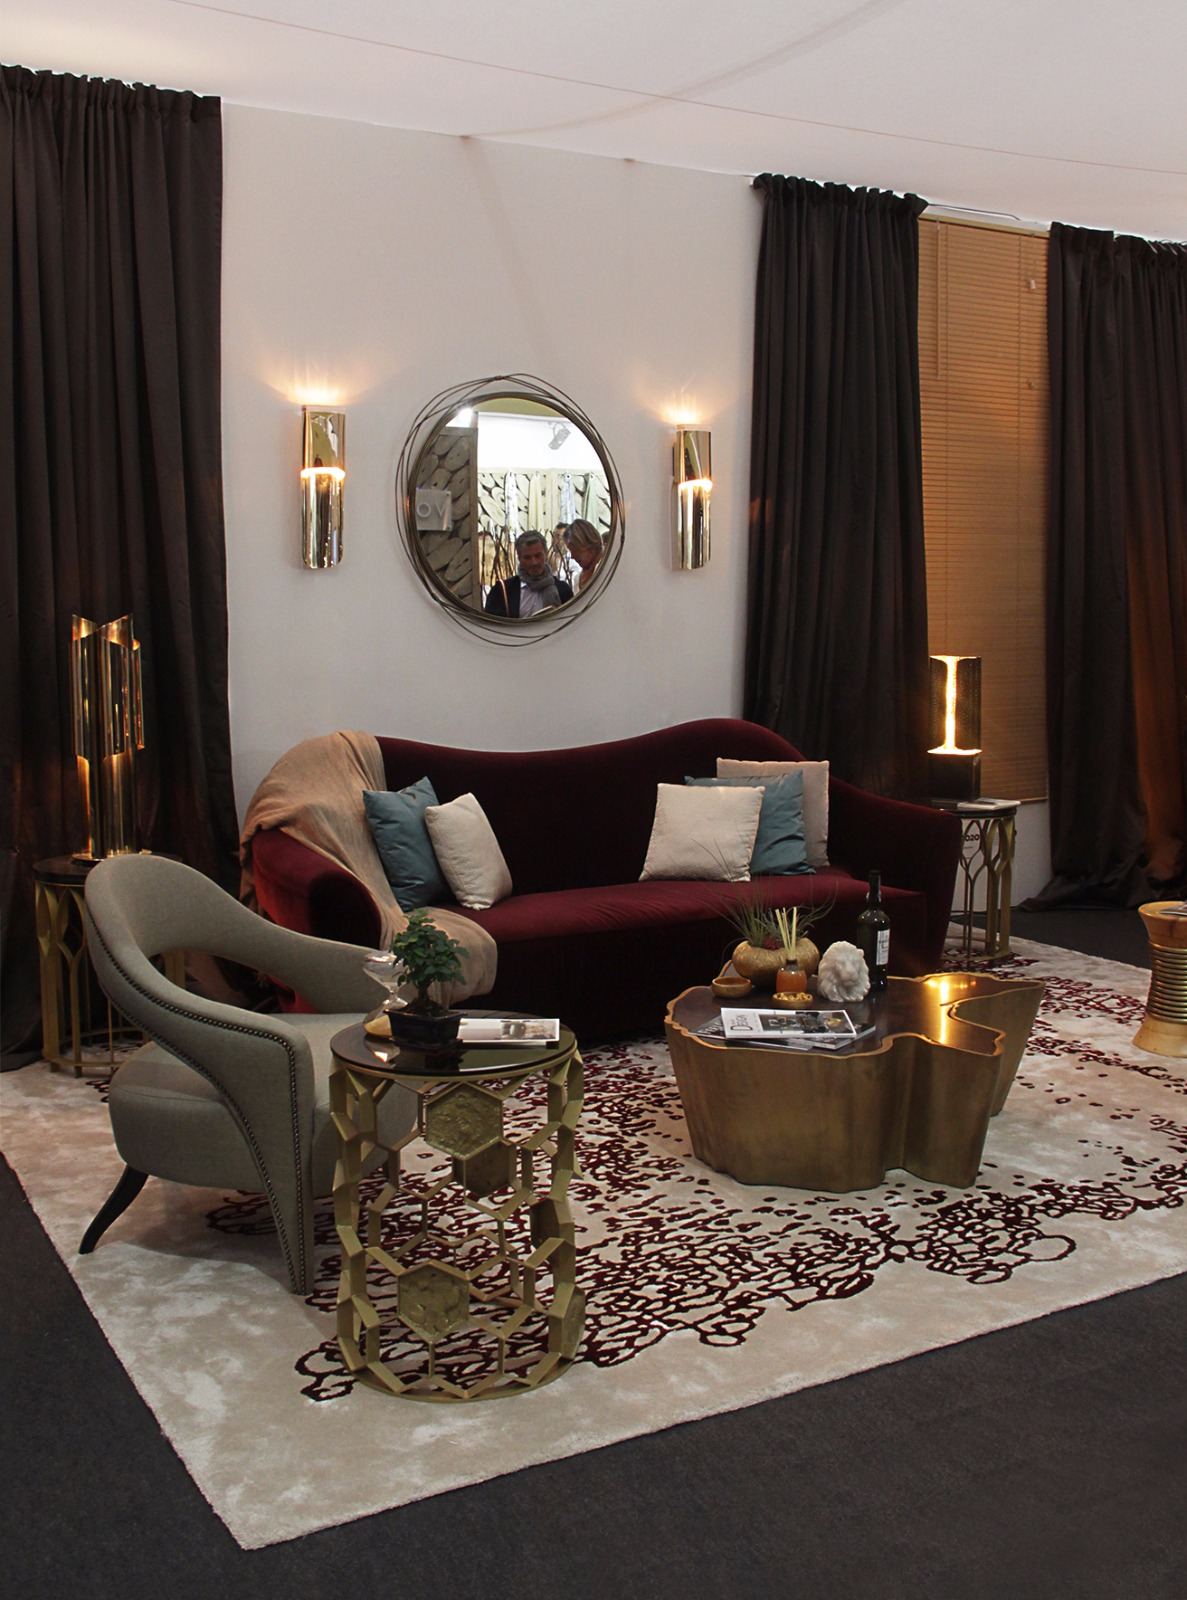 BRABBU at Decorex 2016 decorex international 2016 The Best Stands at Decorex International 2016 Get Inside Decorex International 2016 Take the First Look 1